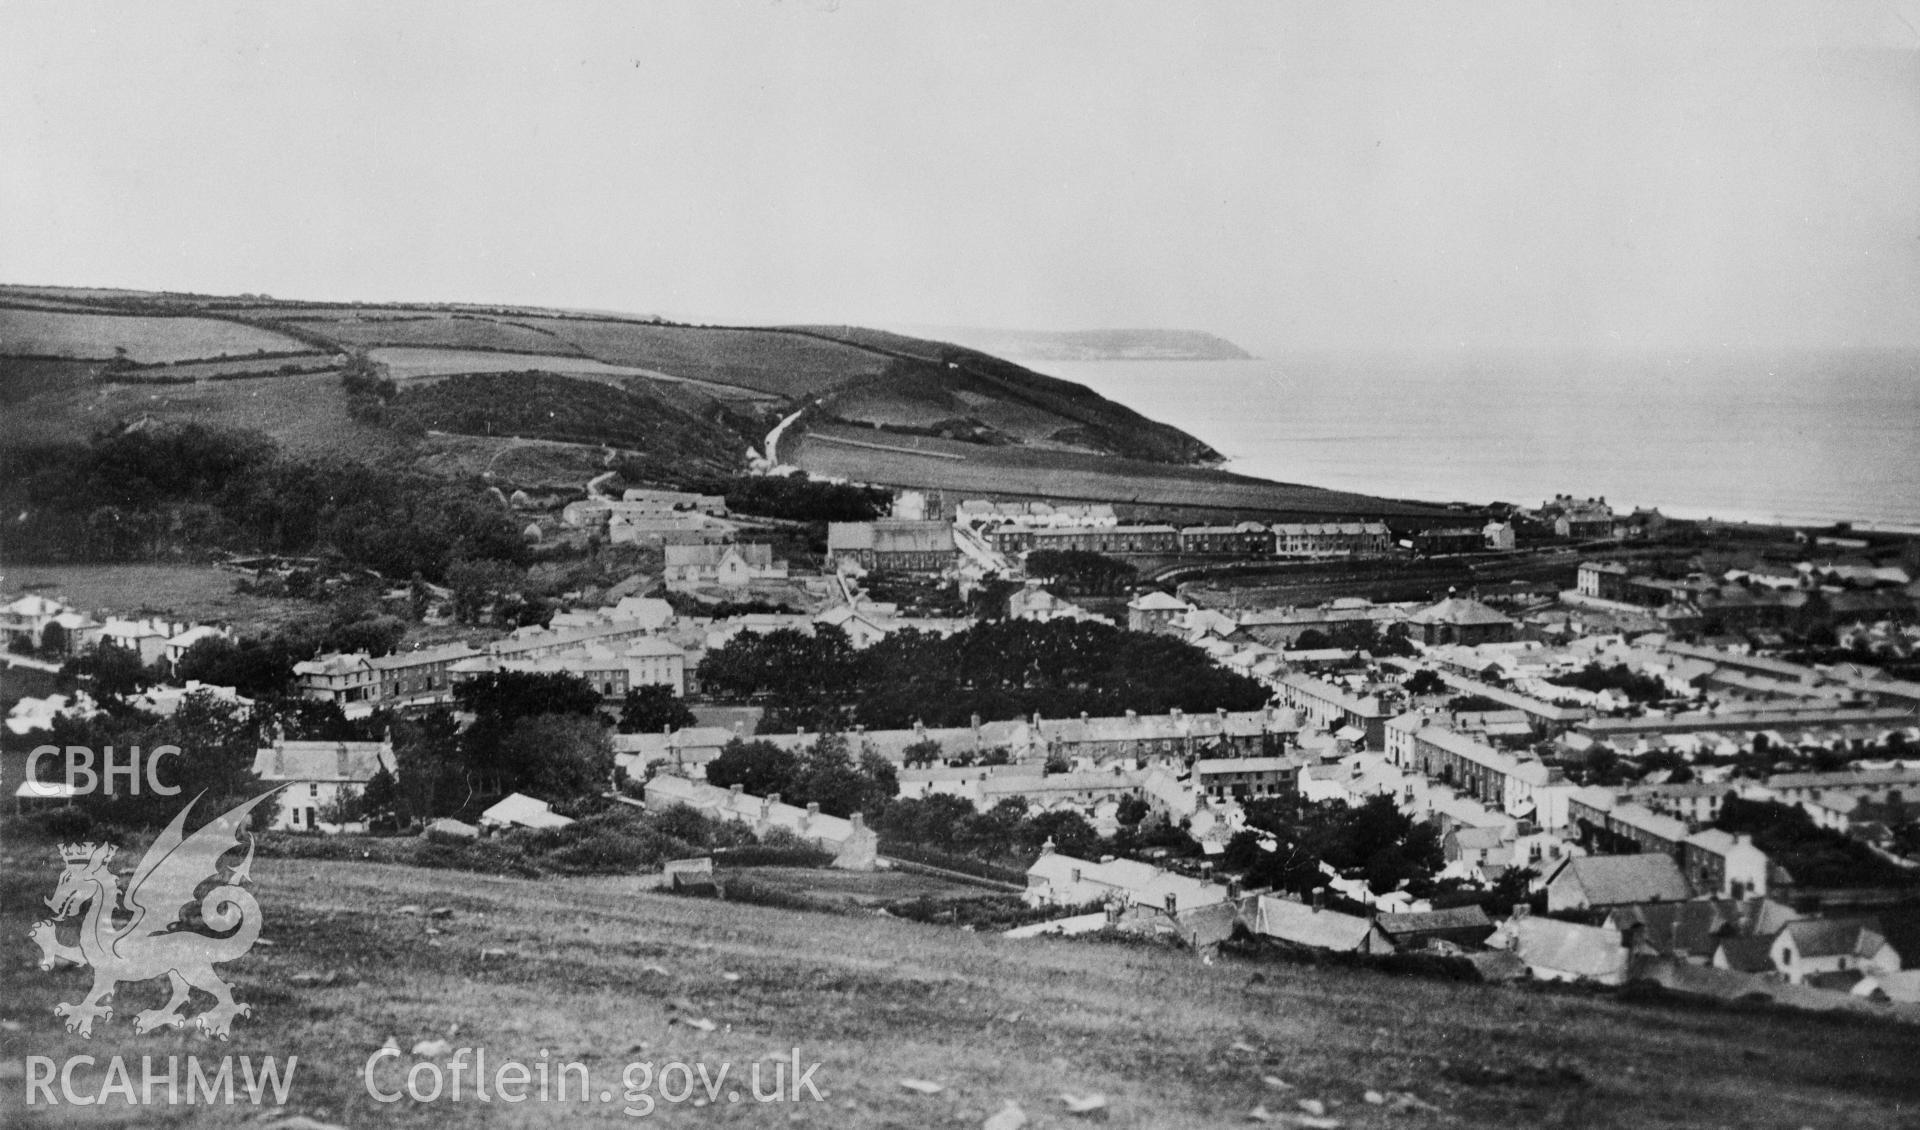 A black and white print of a general view of Aberaeron.